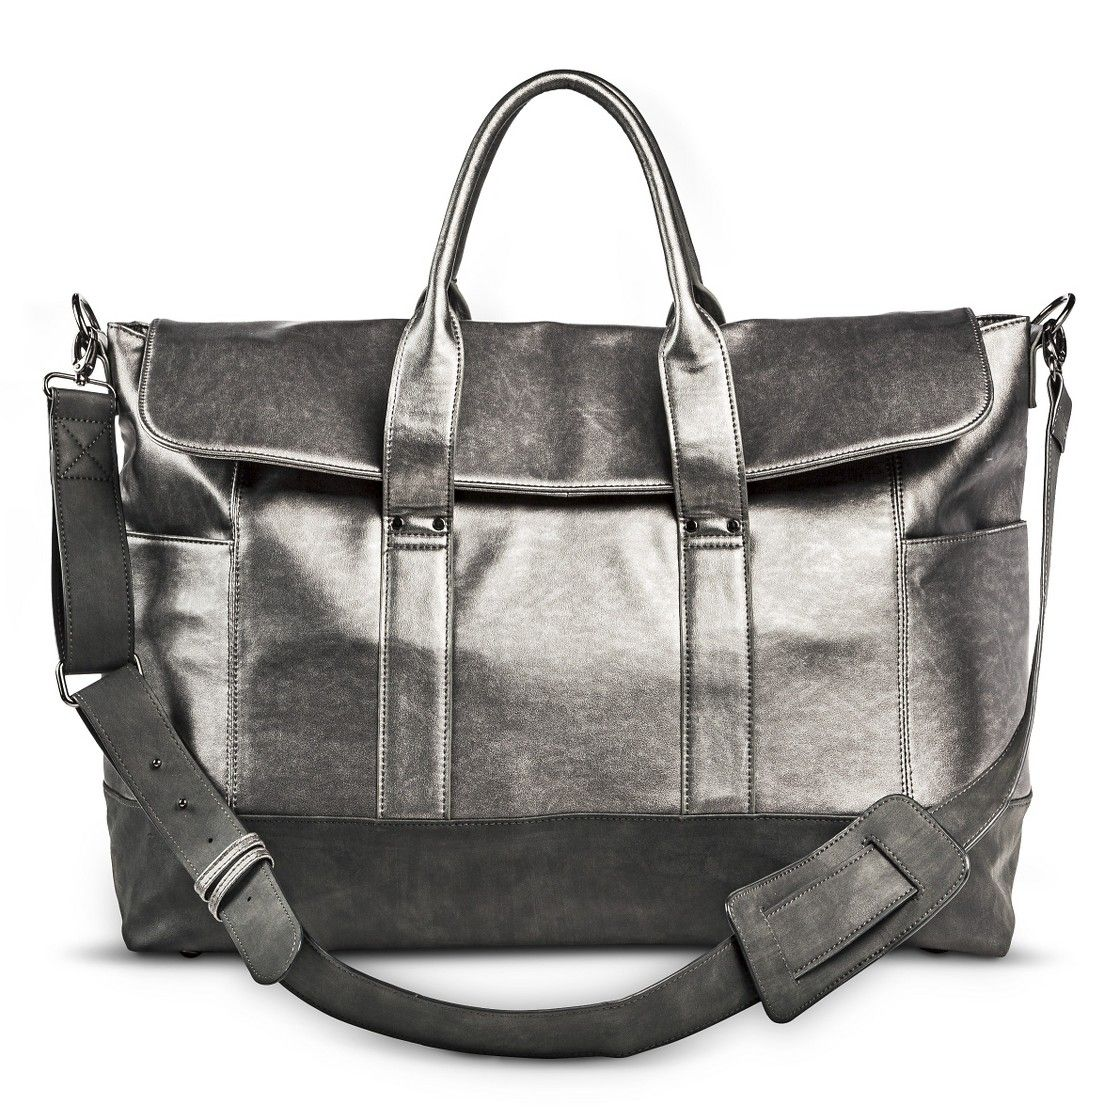 Women's Limited Edition Metallic Weekender Handbag - Silver